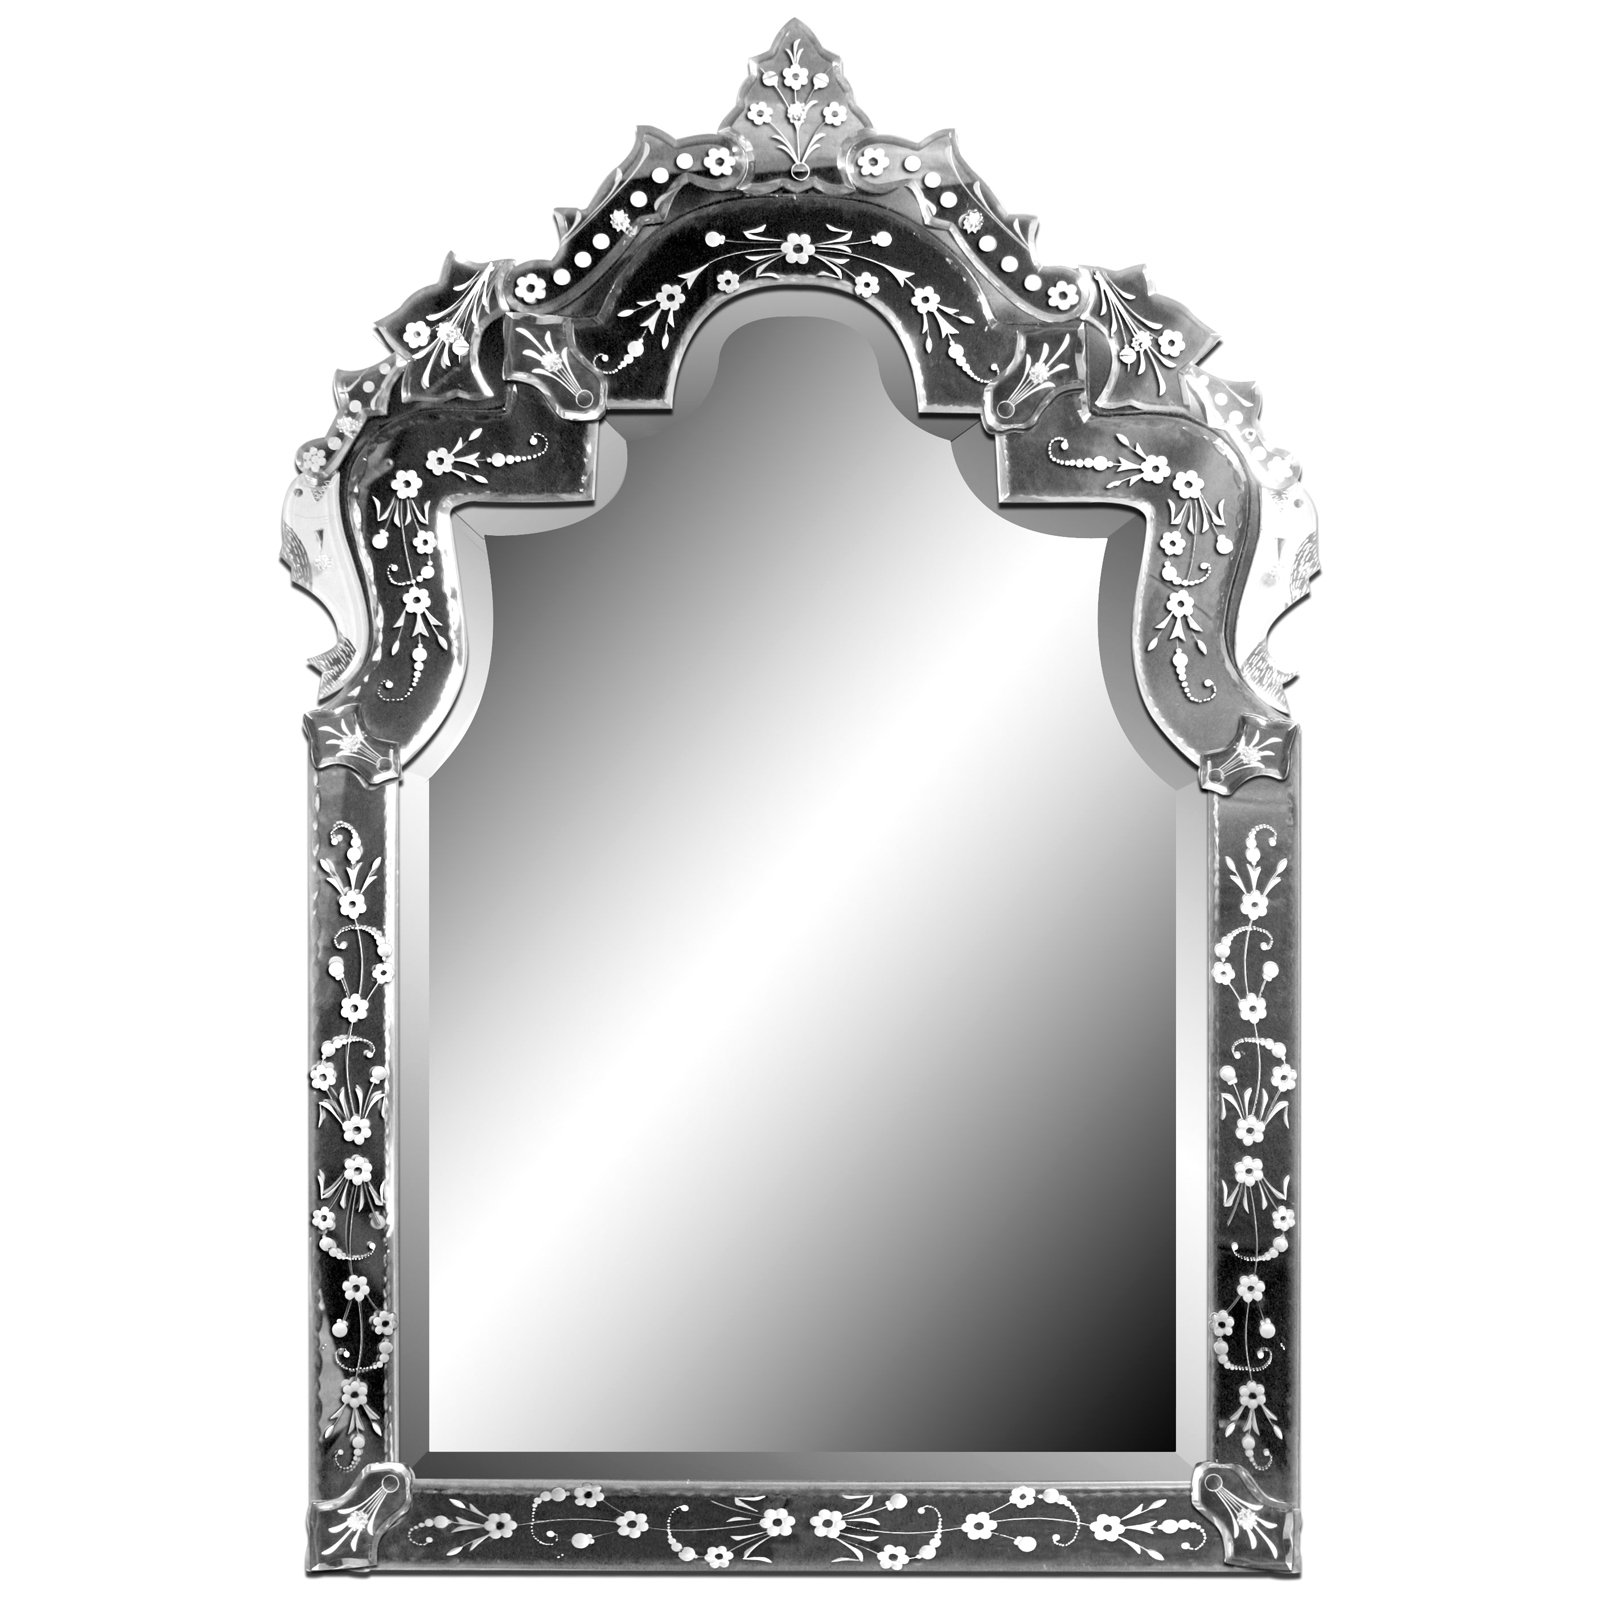 Mirror Full HD Quality Photo | Dictionary of Dreams